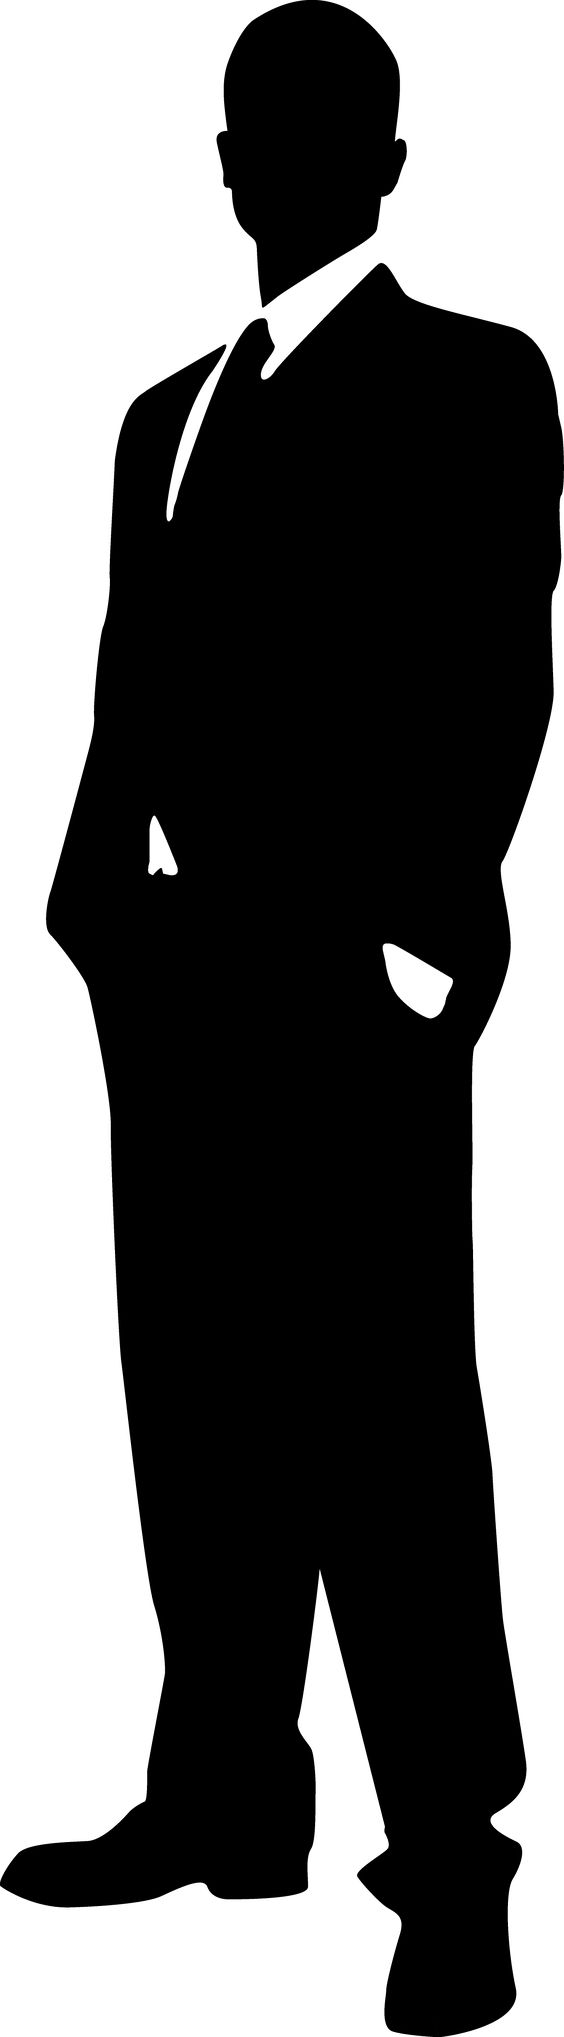 Hot guy clipart silhouette.